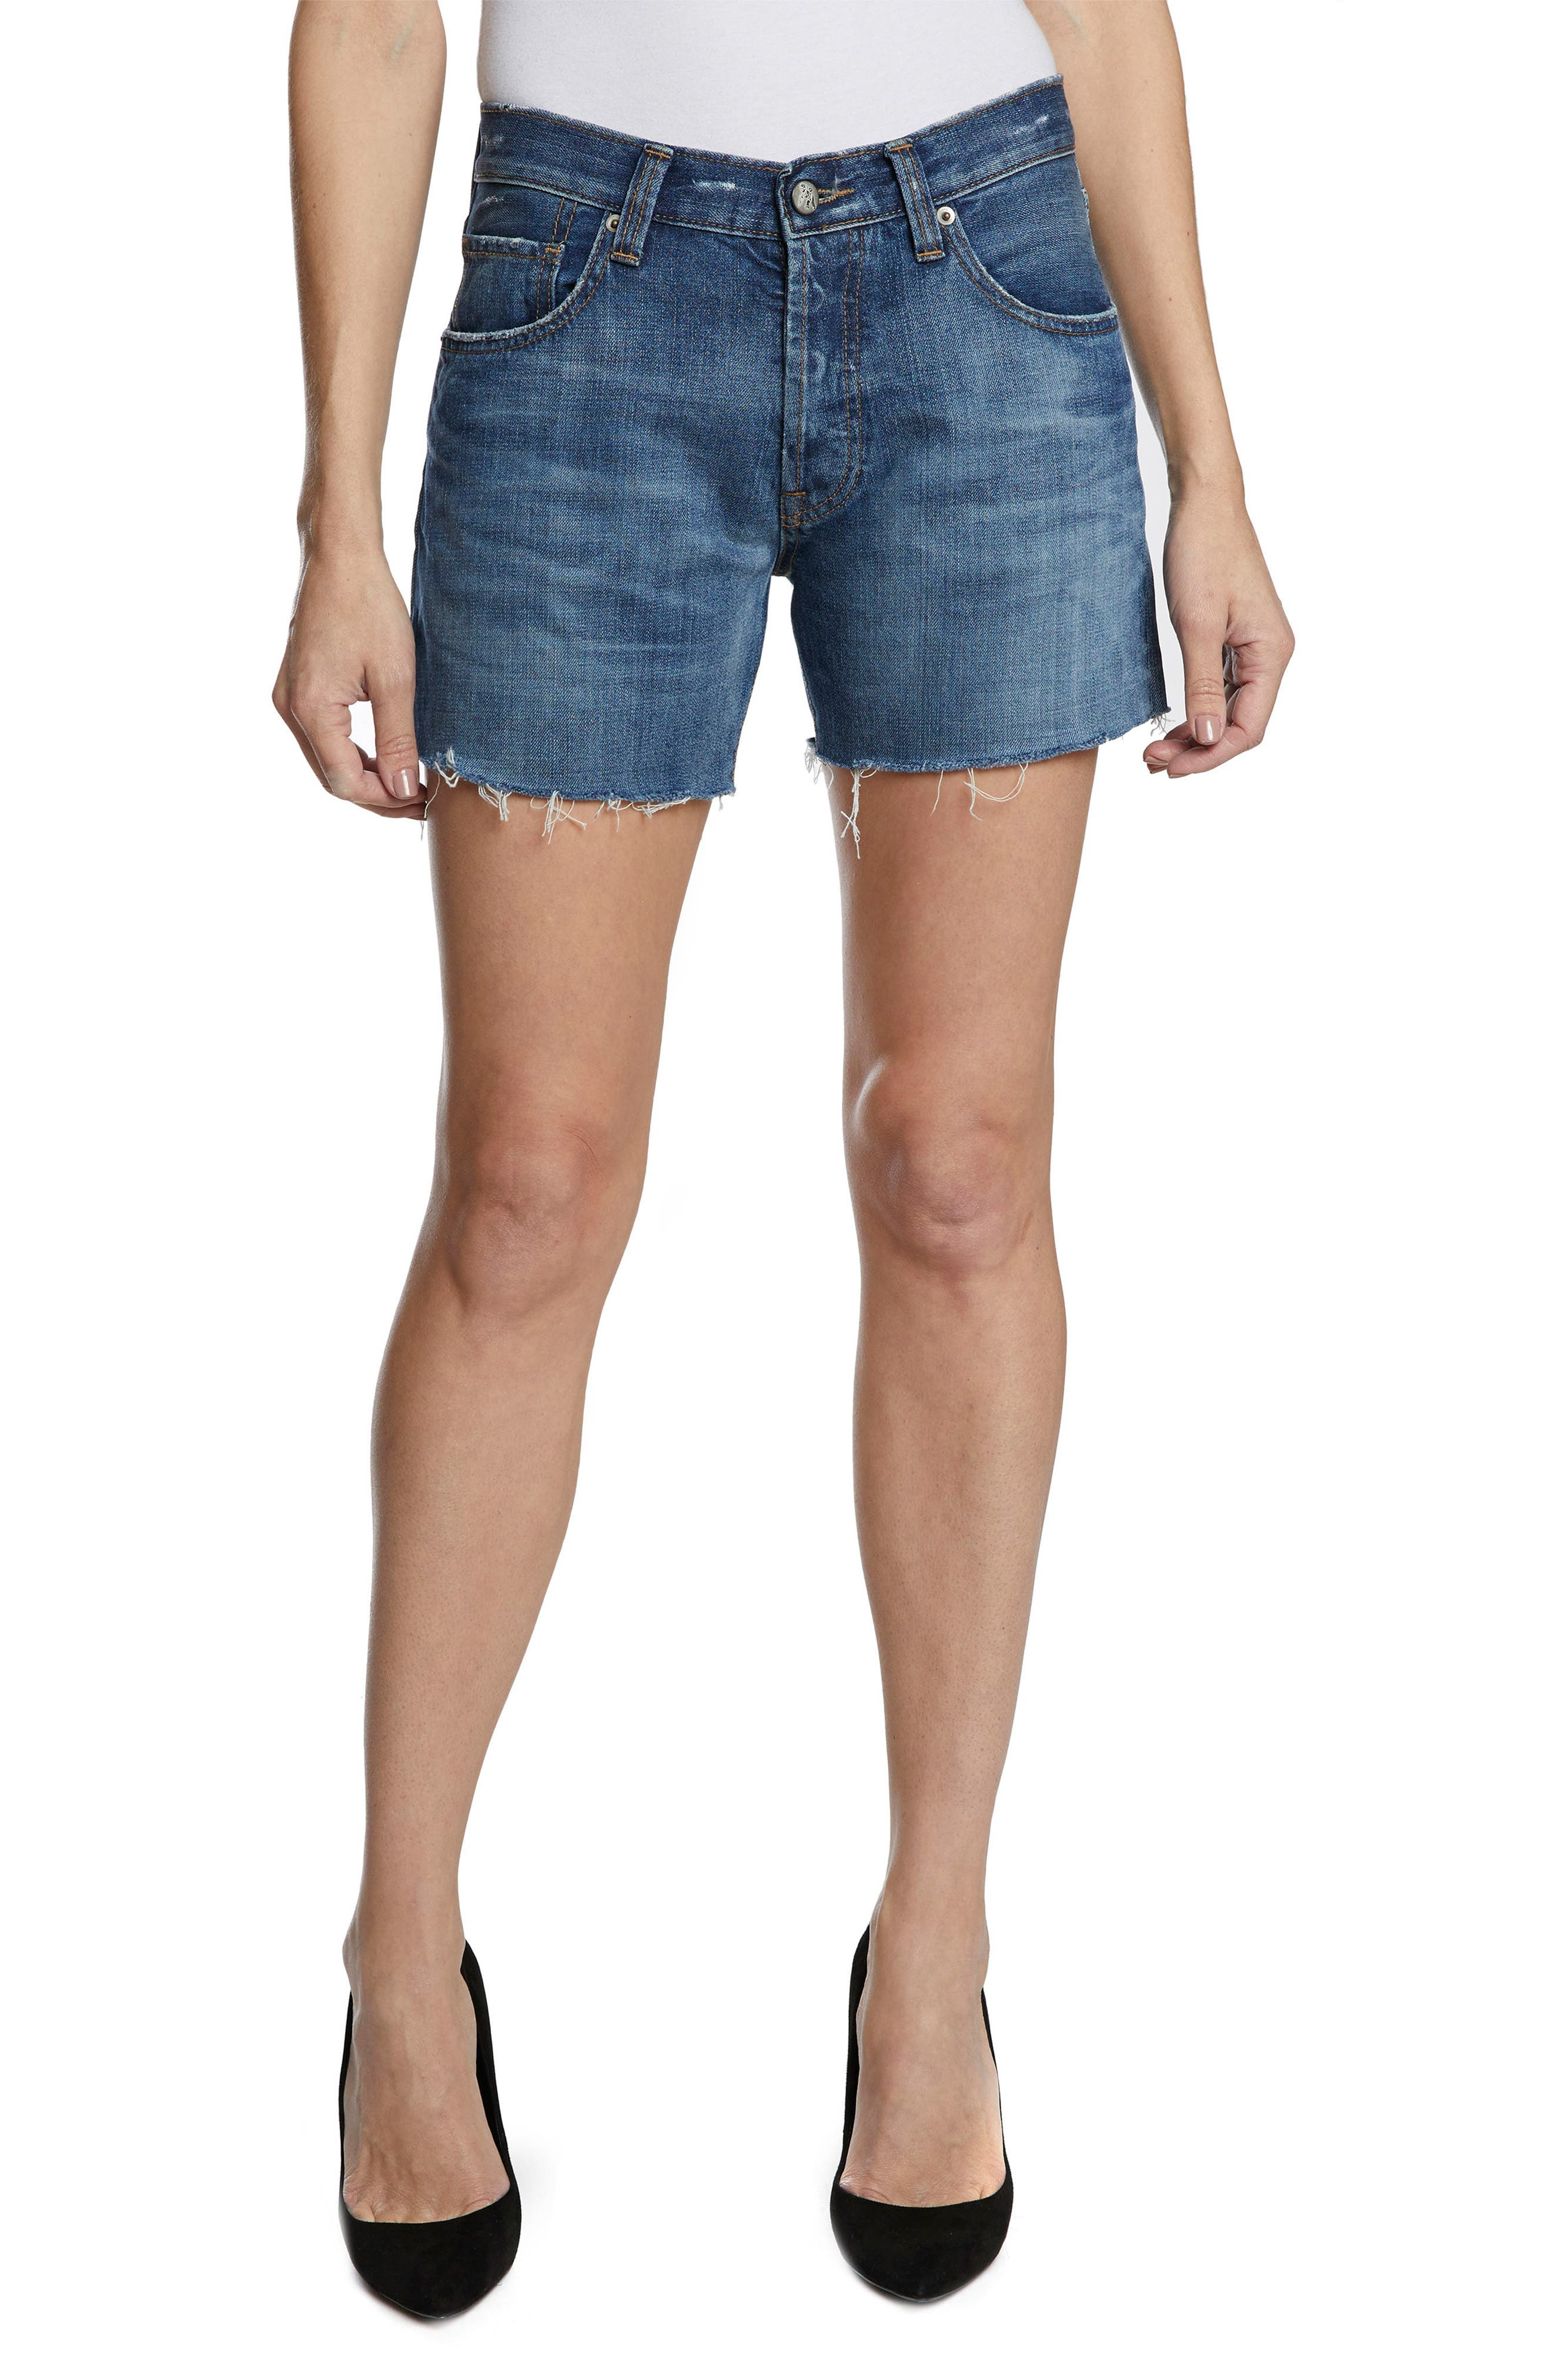 El Camino Cutoff Denim Boyfriend Shorts,                             Main thumbnail 1, color,                             438